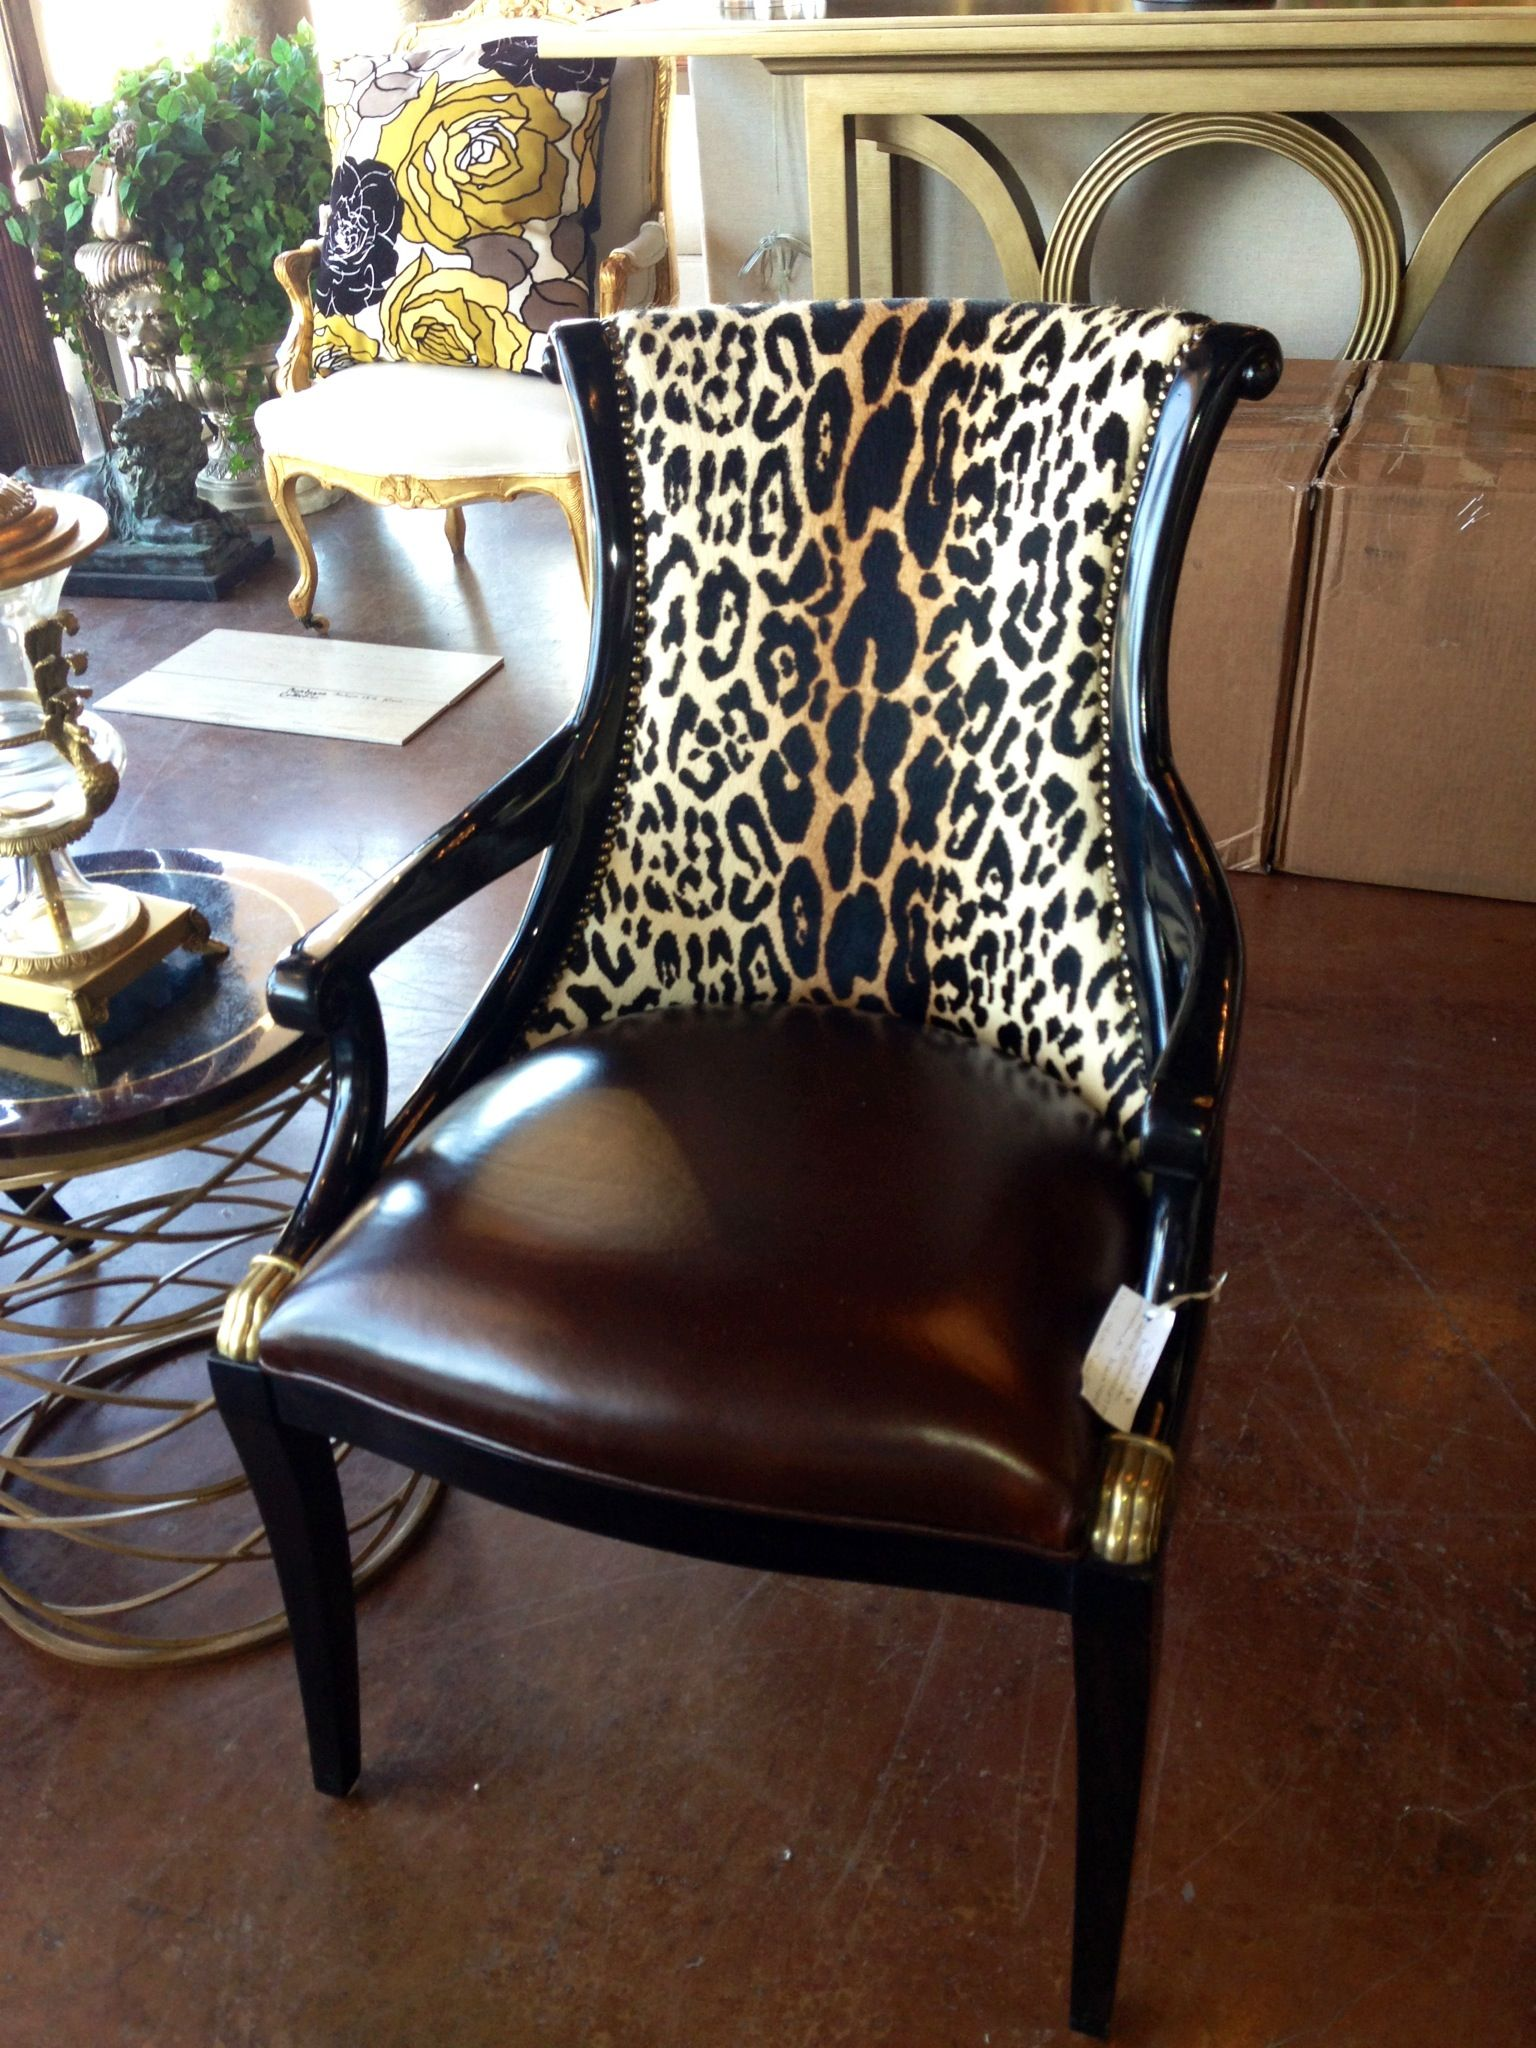 tiger print chair office in olx brittnay blake interiors houston animal leather